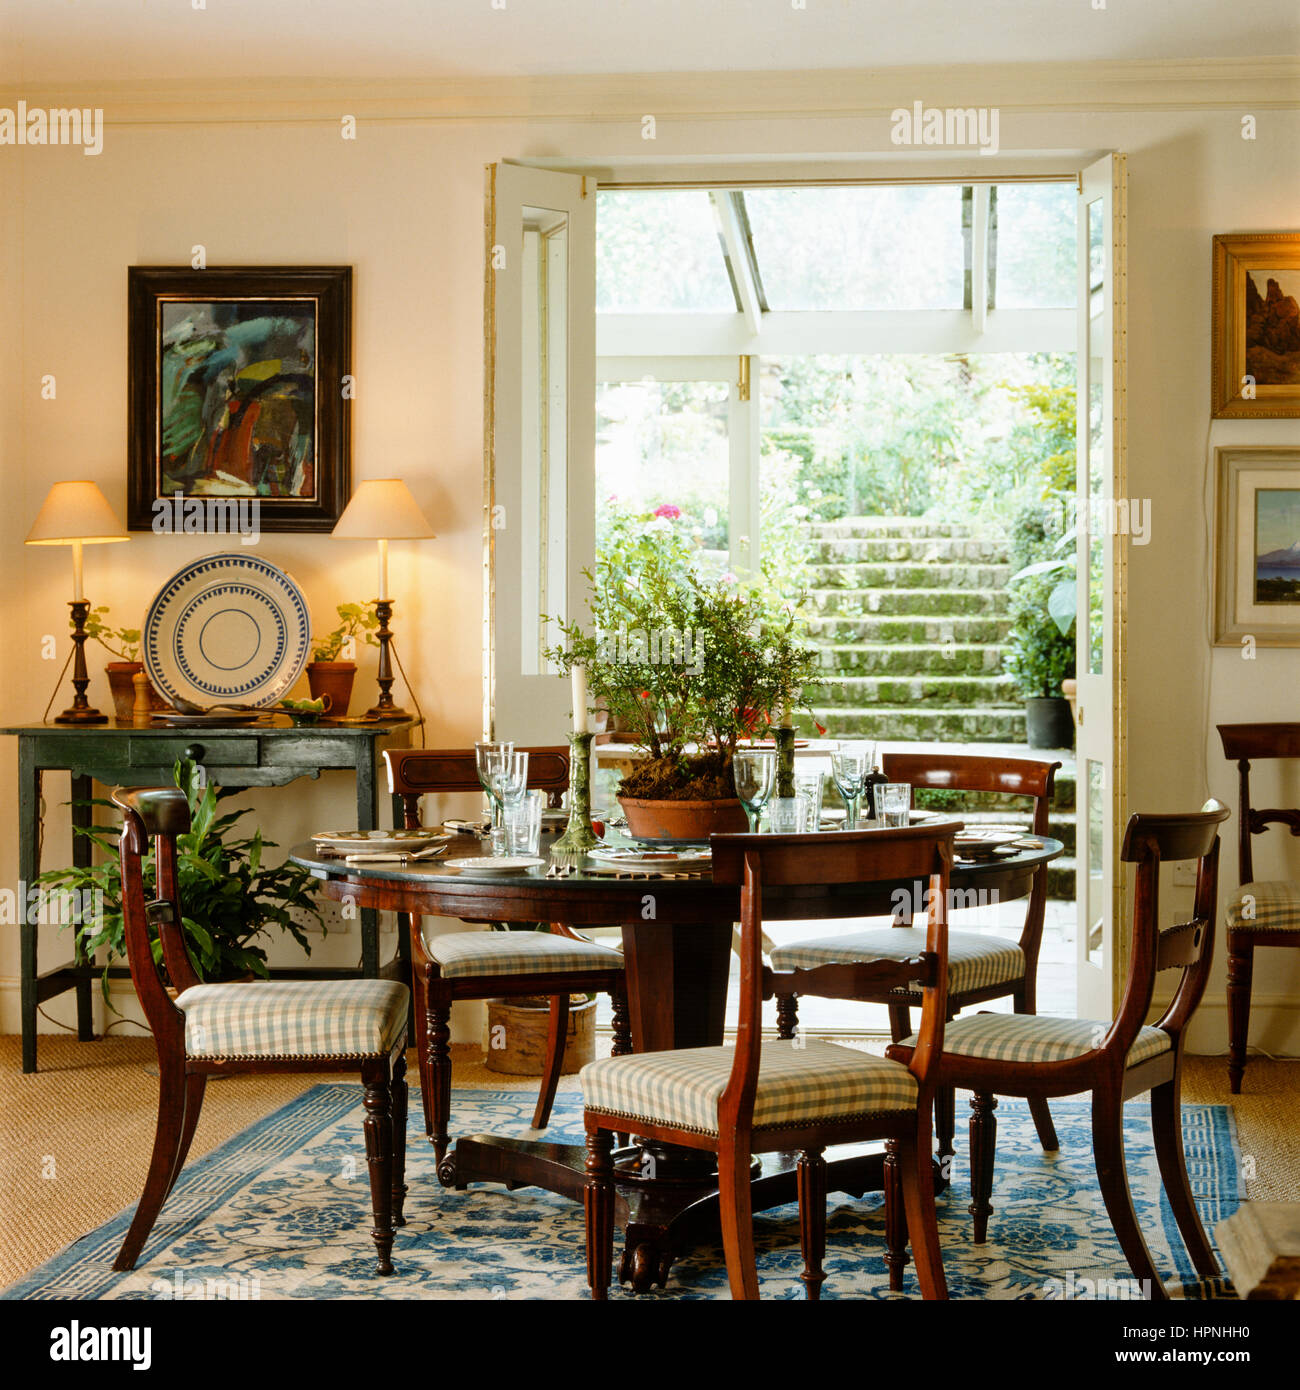 a country style dining room with french doors leading outside stock rh alamy com decorating dining room country style country style dining room hutches